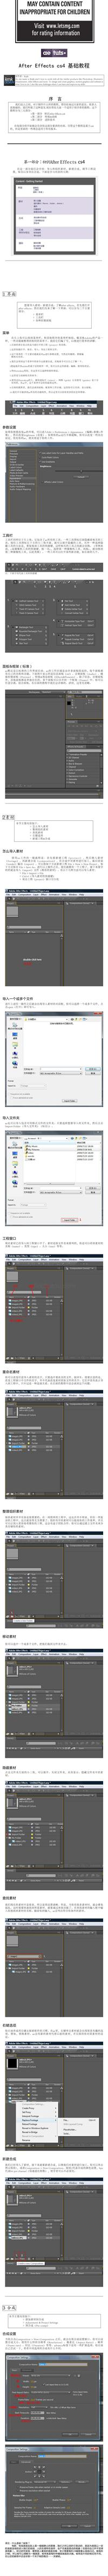 After Effects CS4基础教程